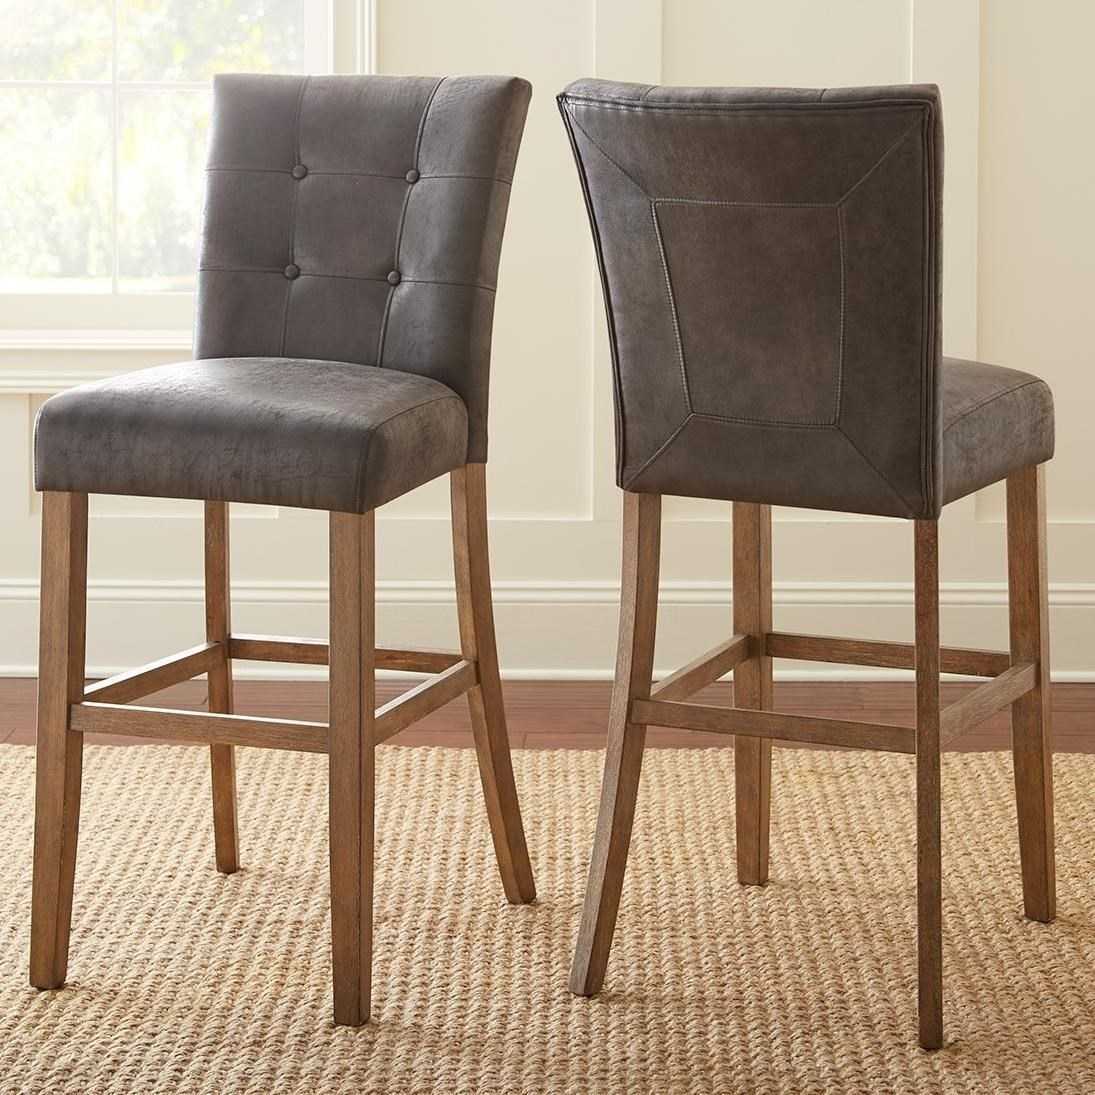 Steve Silver Debby Upholstered Bar Chair Walkers  : products2Fstevesilver2Fcolor2Fdebbydb650bc b1jpgscalebothampwidth500ampheight500ampfsharpen25ampdown from www.walkersfurniture.com size 500 x 500 jpeg 70kB